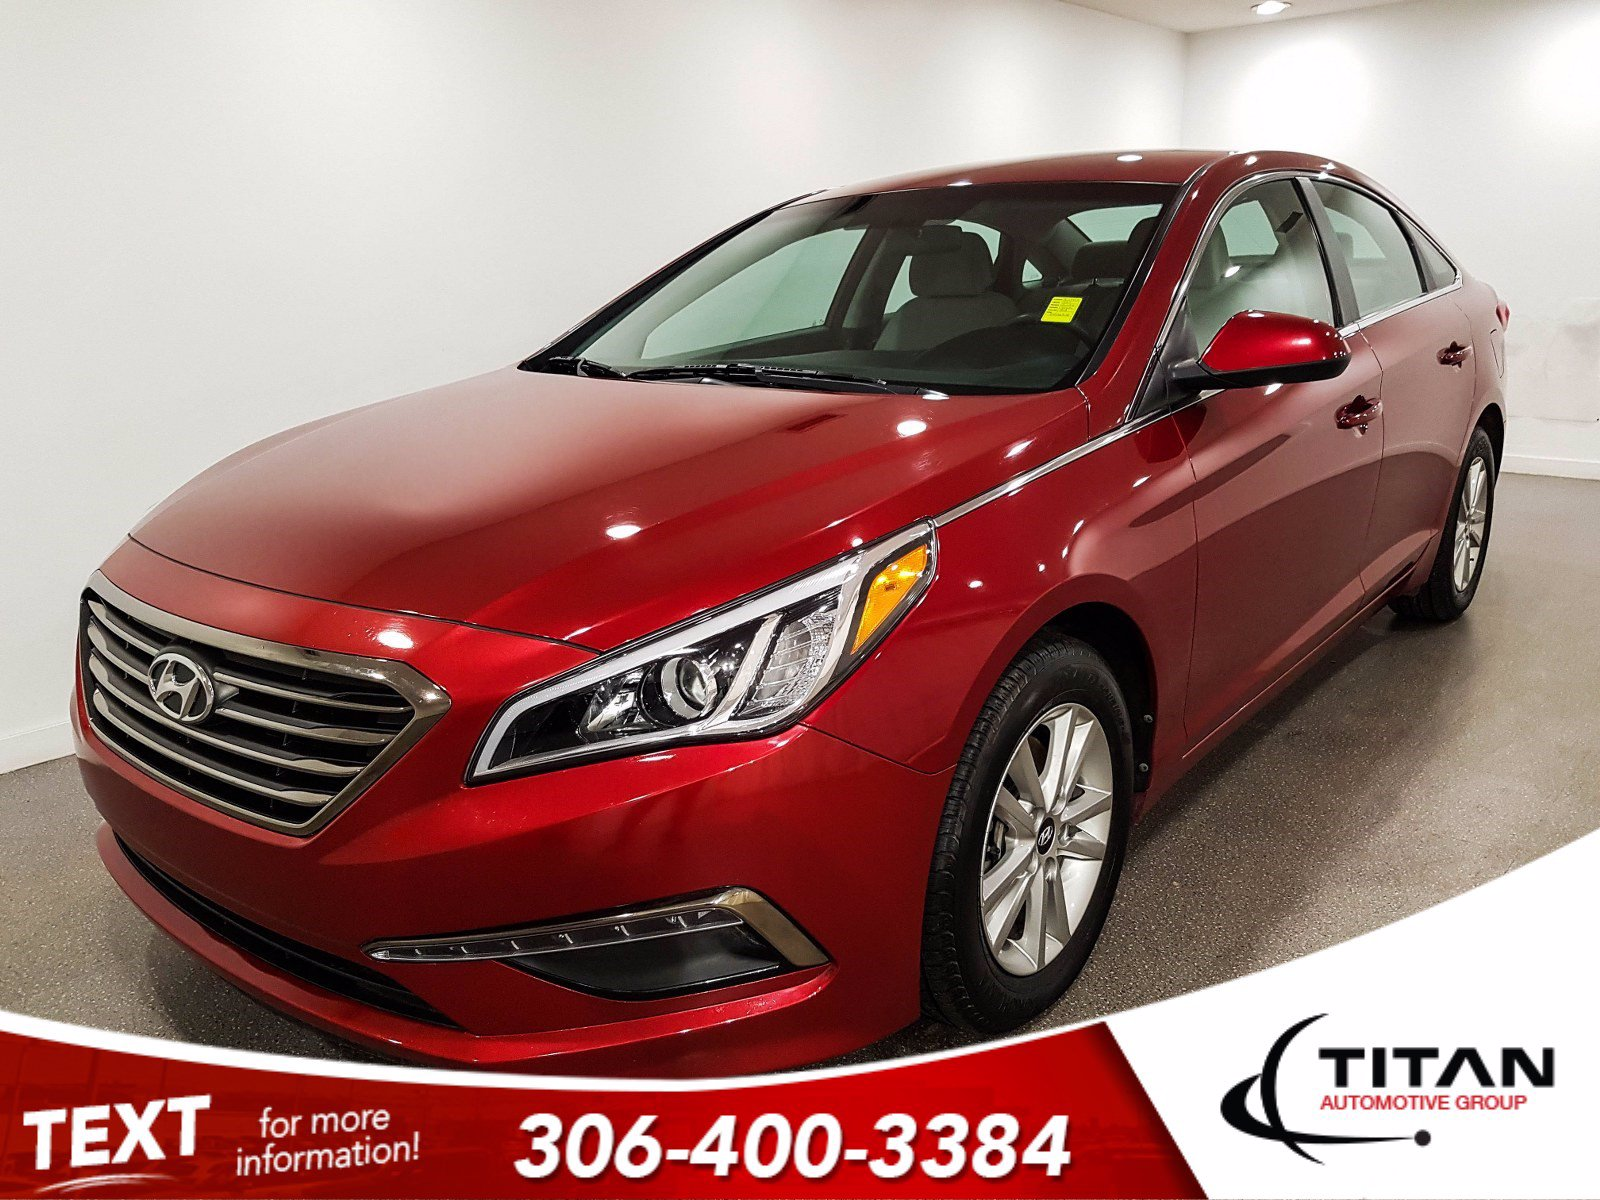 Pre-Owned 2015 Hyundai Sonata GL | Heated Seats | Bluetooth | Back-up Camera | Rims | Spoiler | Fully Inspected